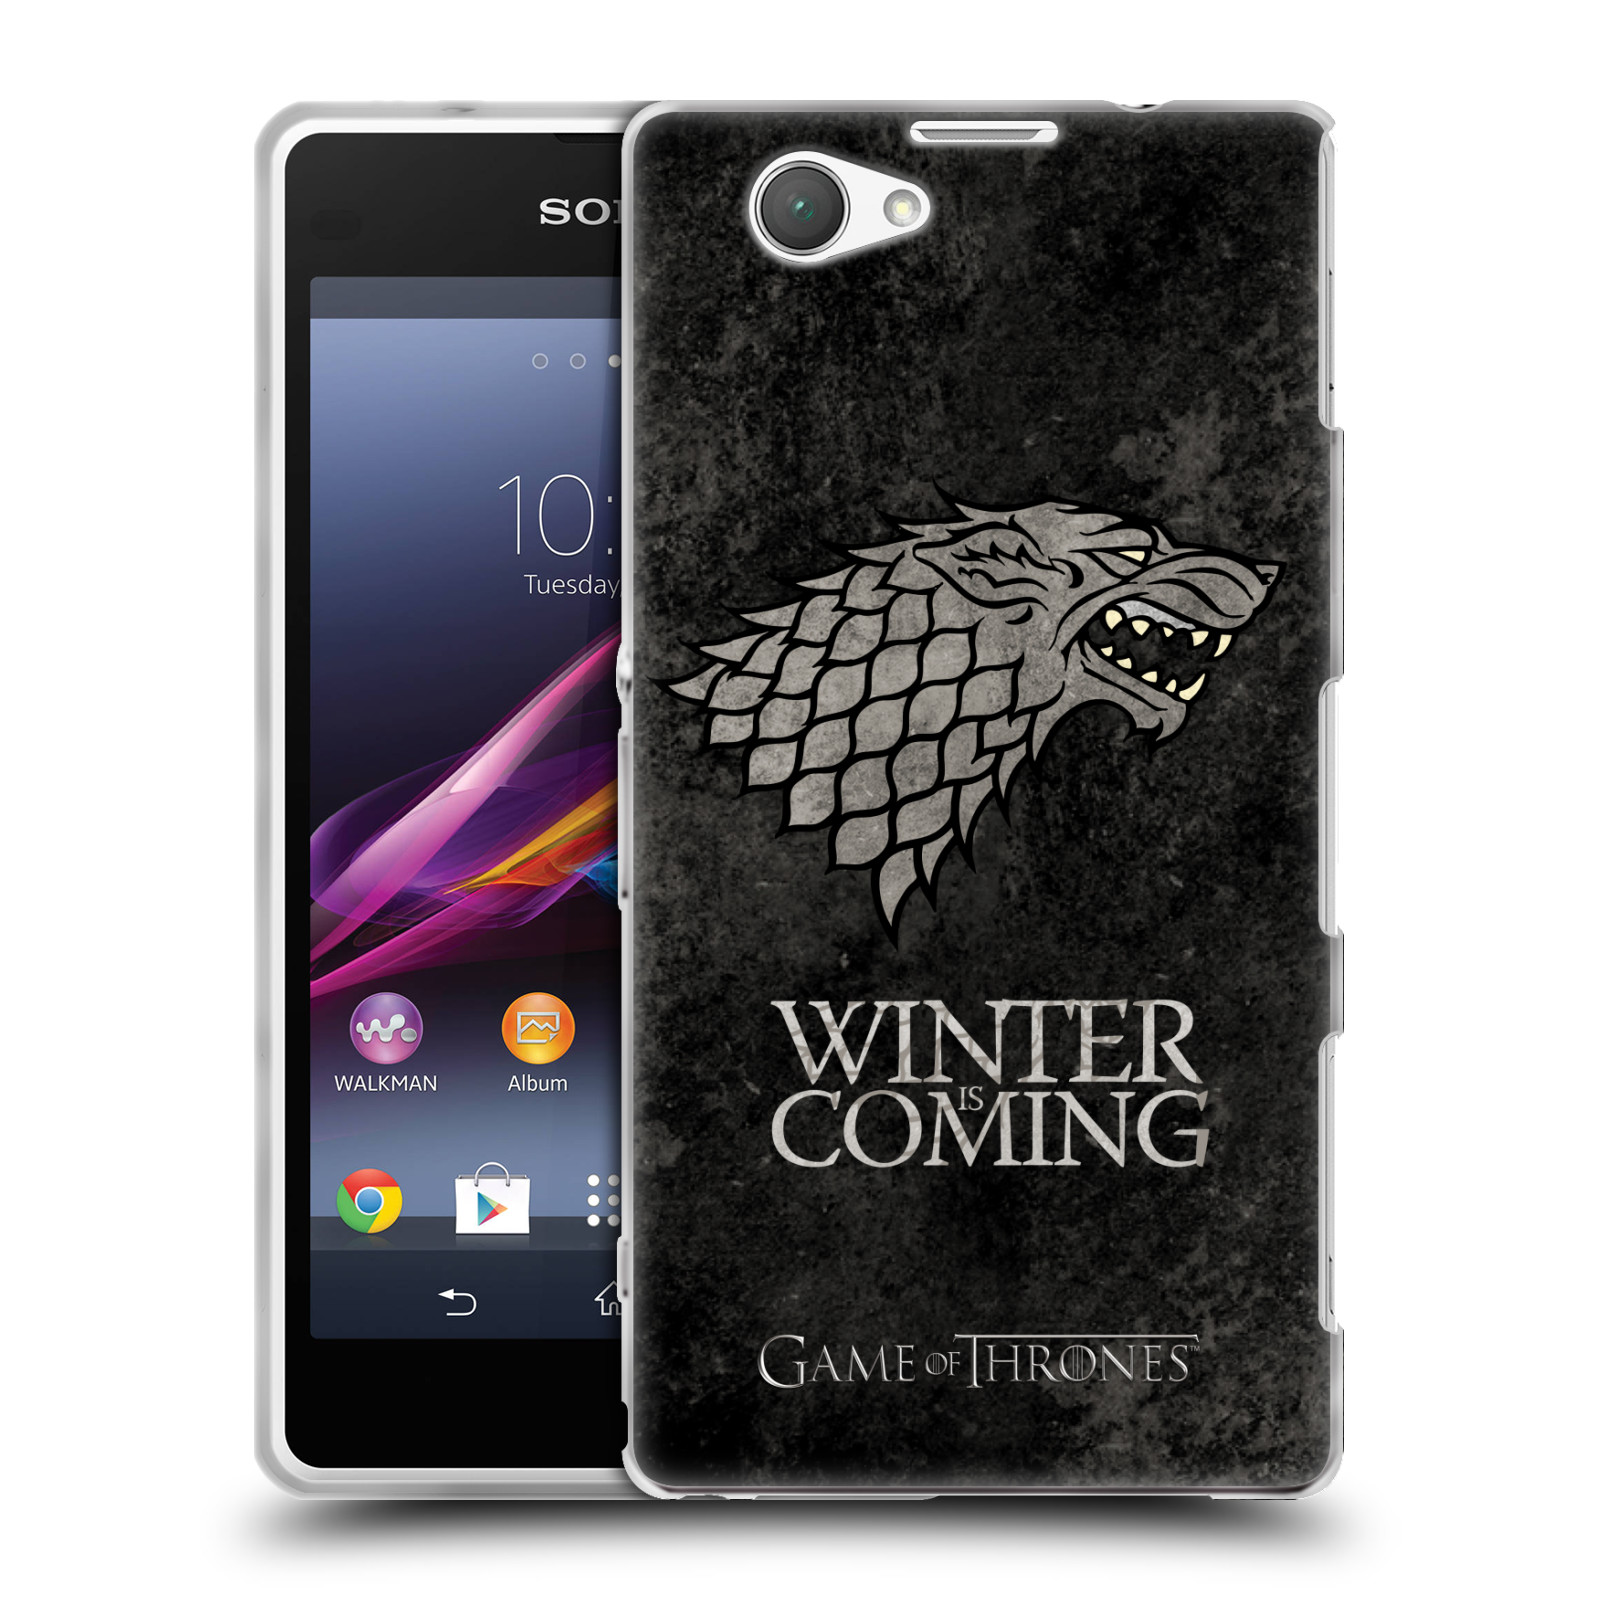 Silikonové pouzdro na mobil Sony Xperia Z1 Compact D5503 HEAD CASE Hra o trůny - Stark - Winter is coming